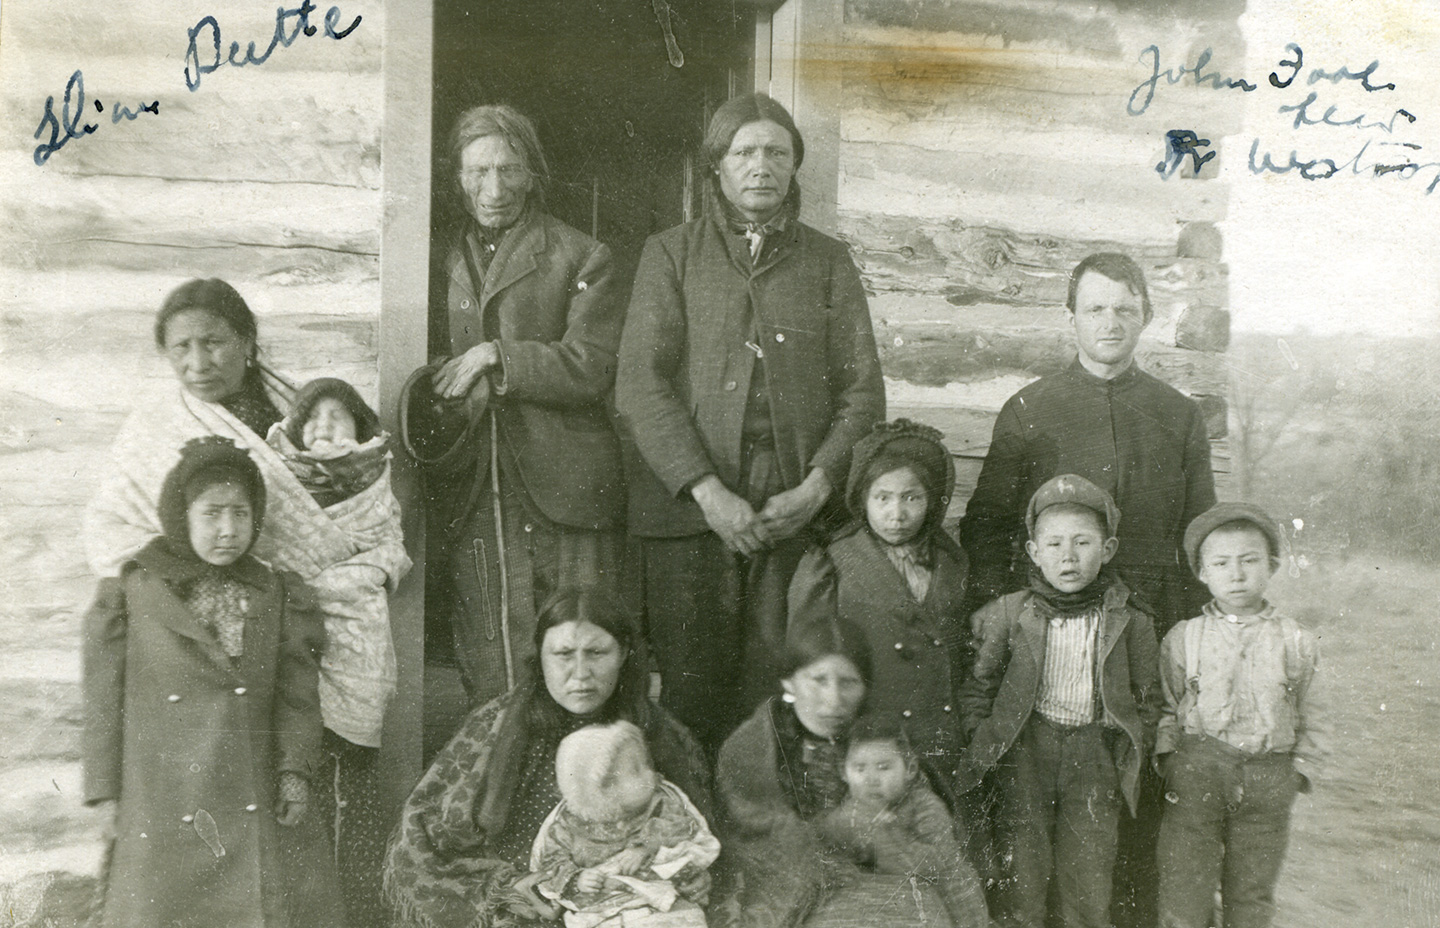 Henry Westropp, S.J., visiting John Fool Head and family, n.d., 1890-1920, Slum Buttes, SD